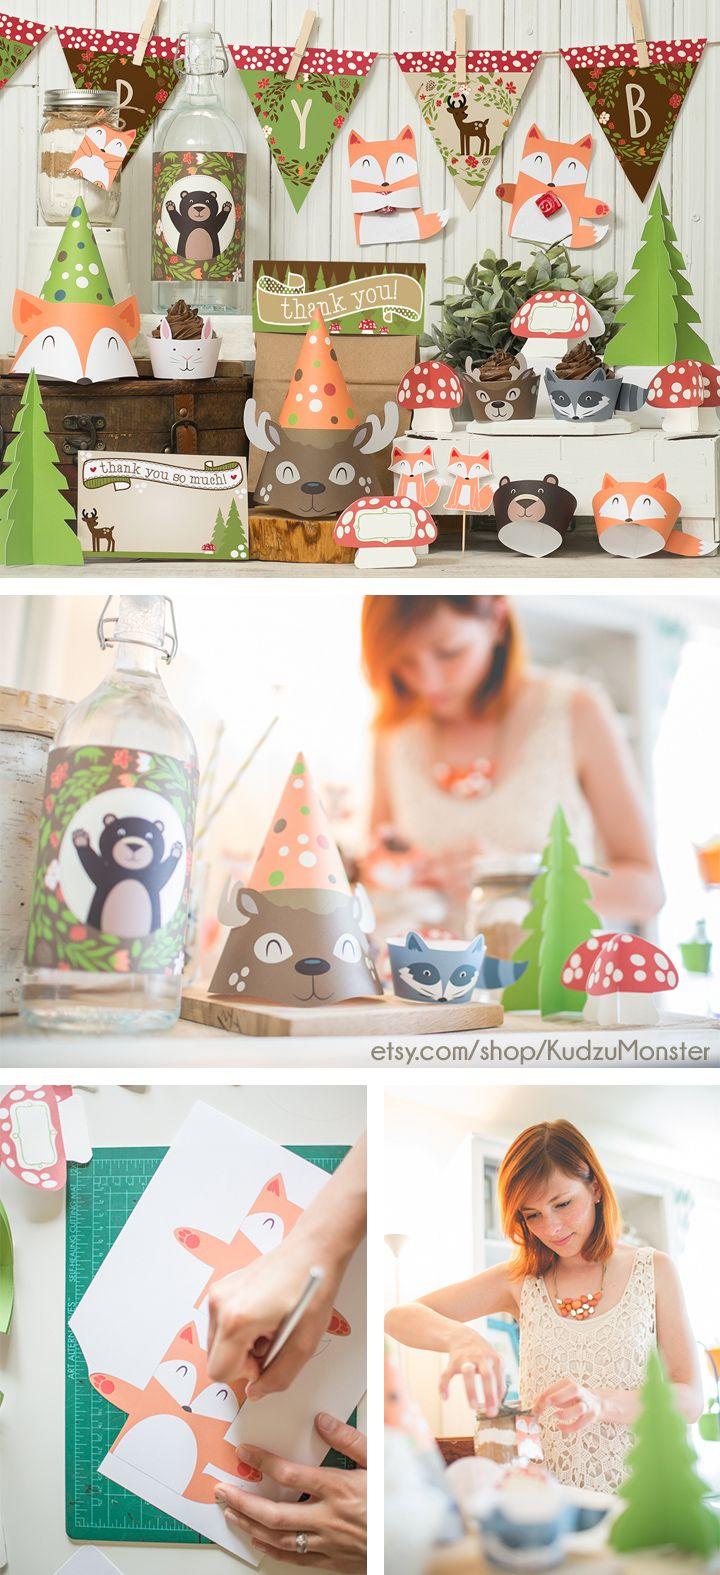 woodland party decor kit Instant Download on KudzuMonster.net or etsy.com/shop/Kudzumonster